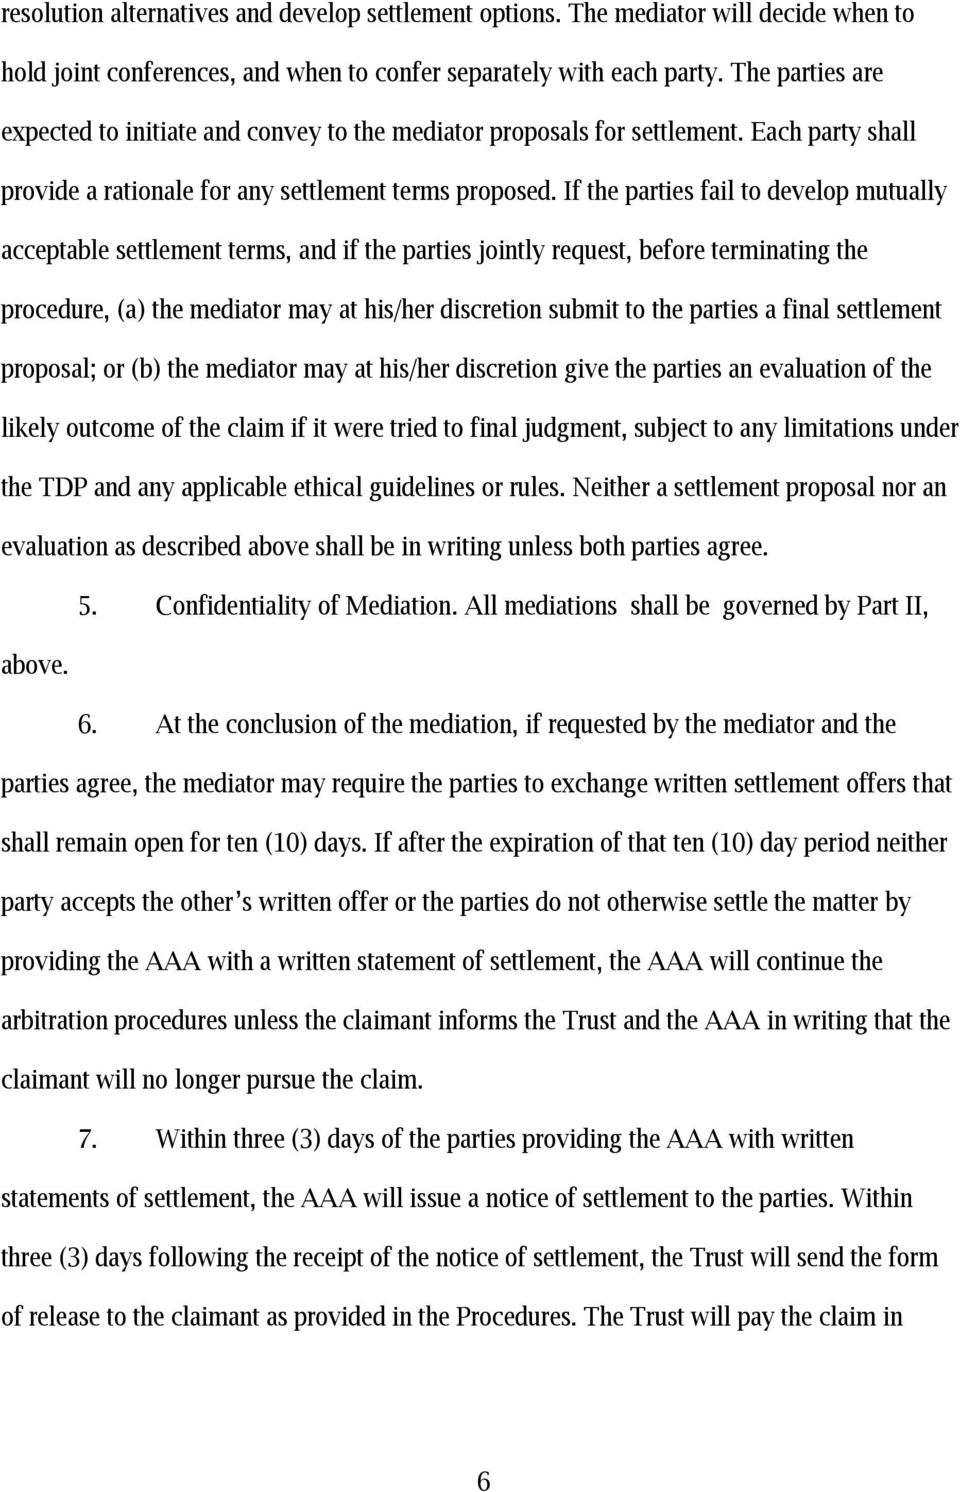 If the parties fail to develop mutually acceptable settlement terms, and if the parties jointly request, before terminating the procedure, (a) the mediator may at his/her discretion submit to the